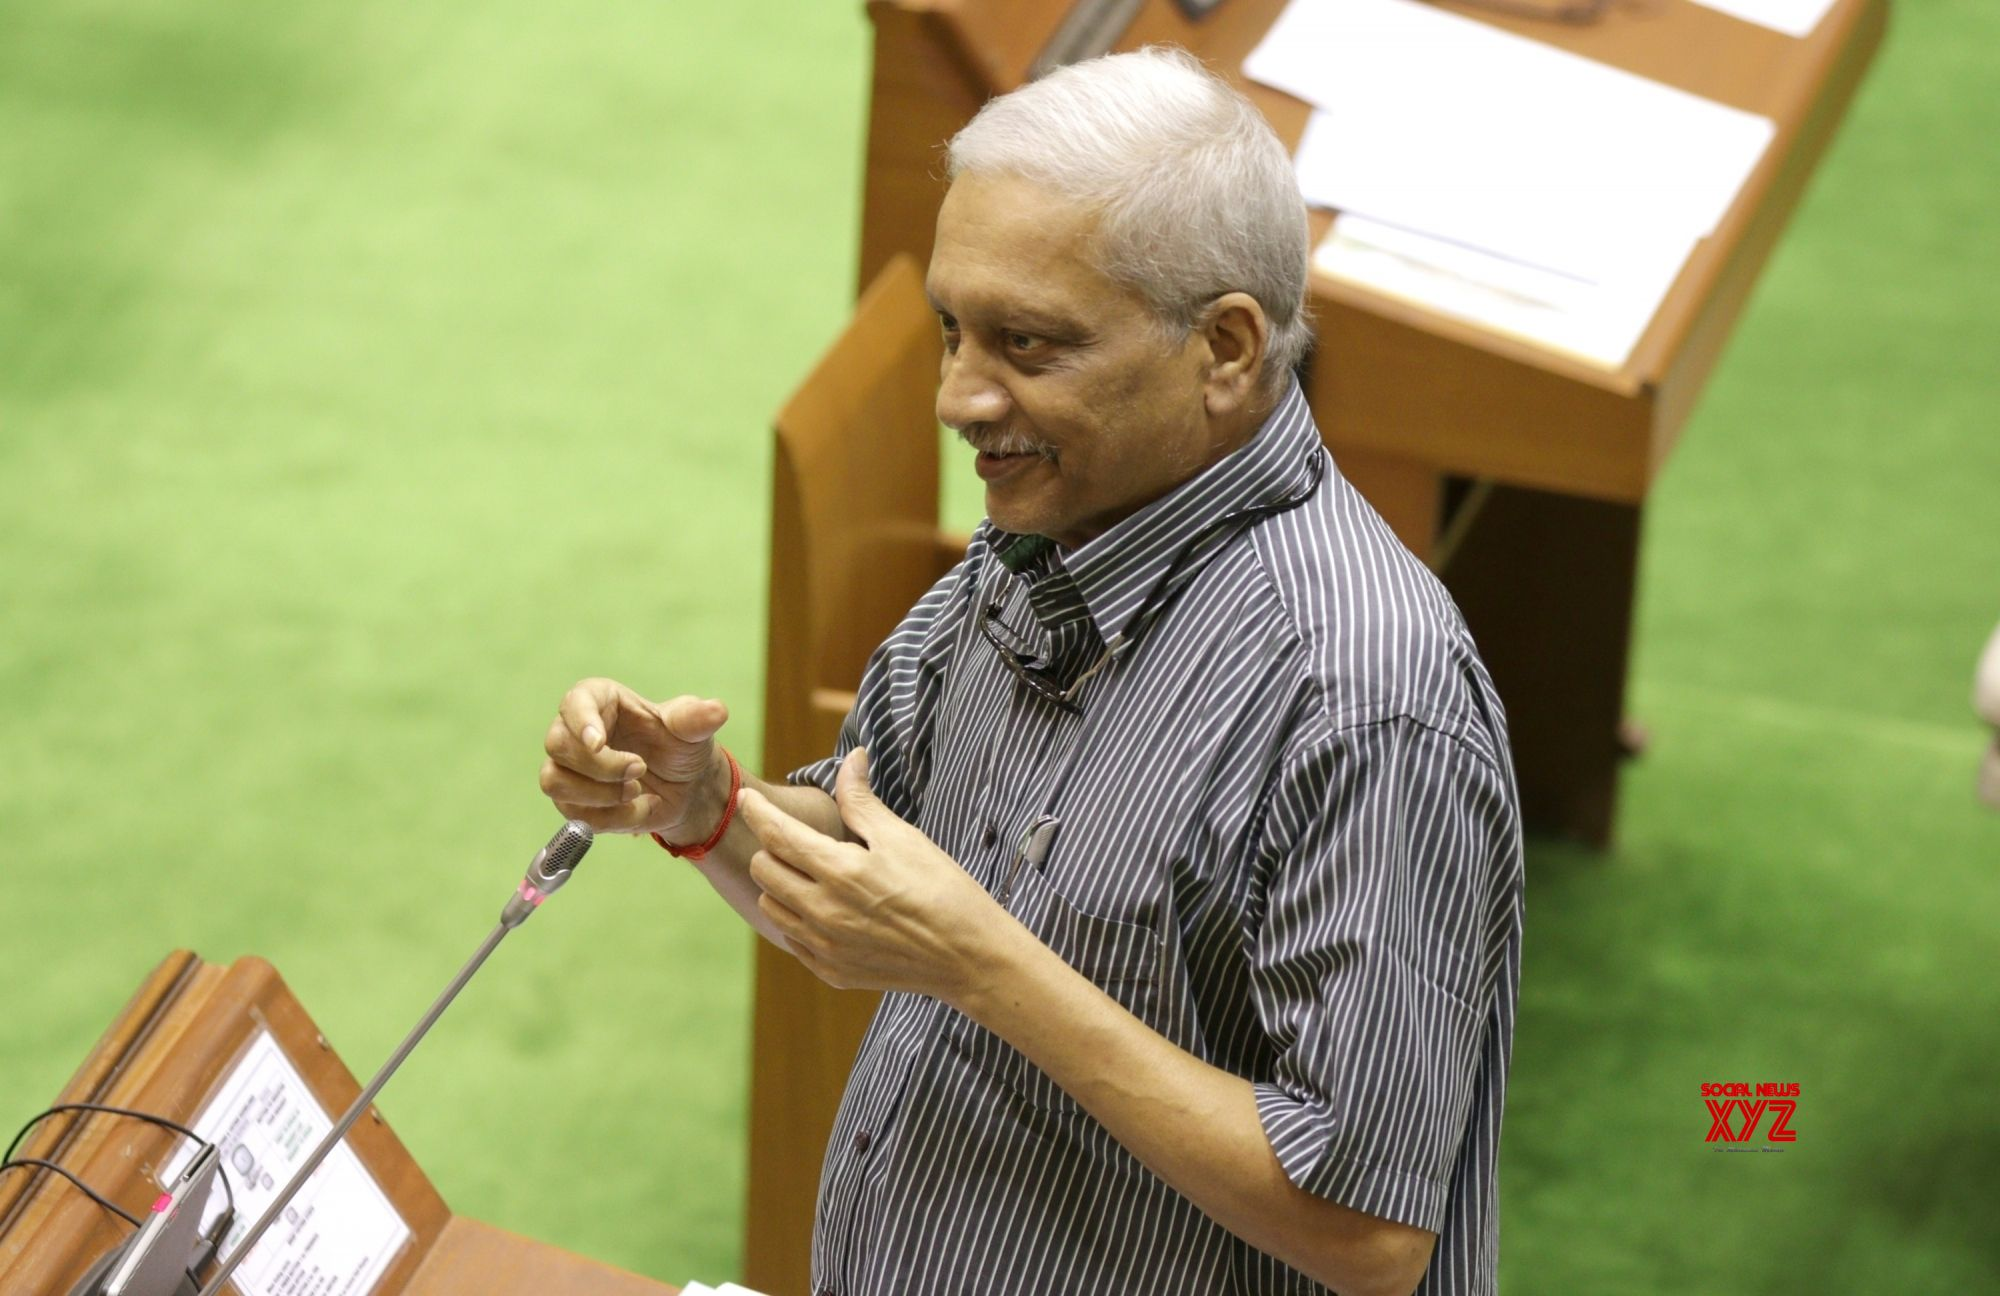 Parrikar's legacy was marred by U-turns: Biographer